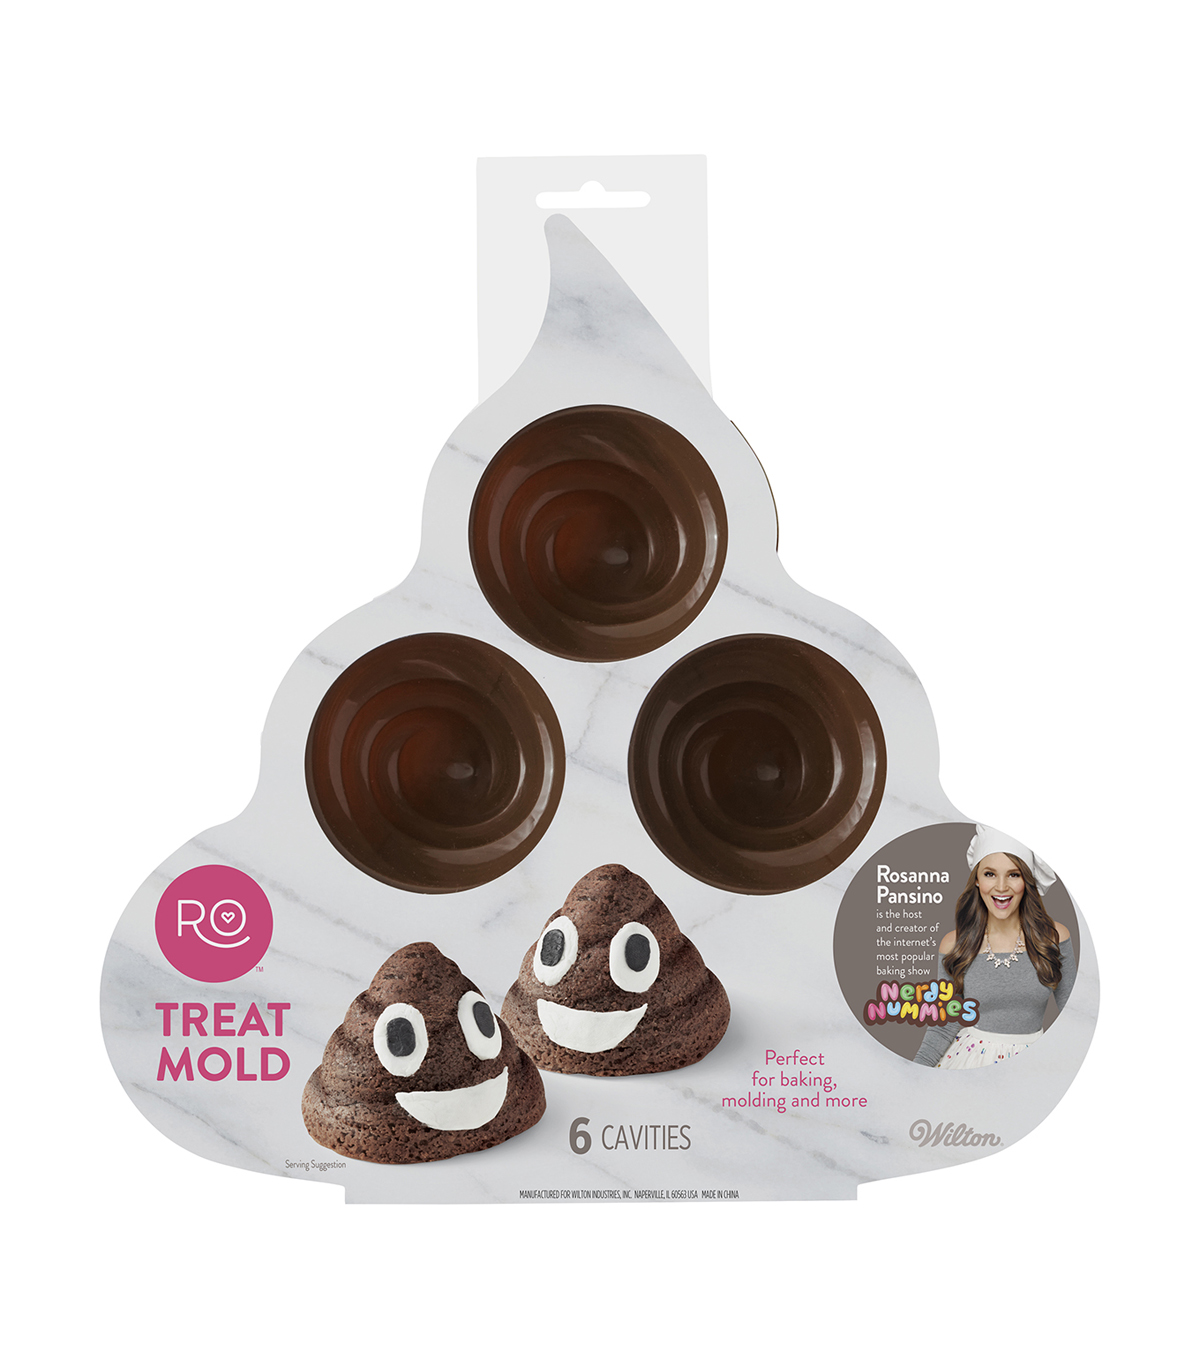 Rosanna Pansino By Wilton 6 Cavity Silicone Poop Swirl Treat Mold